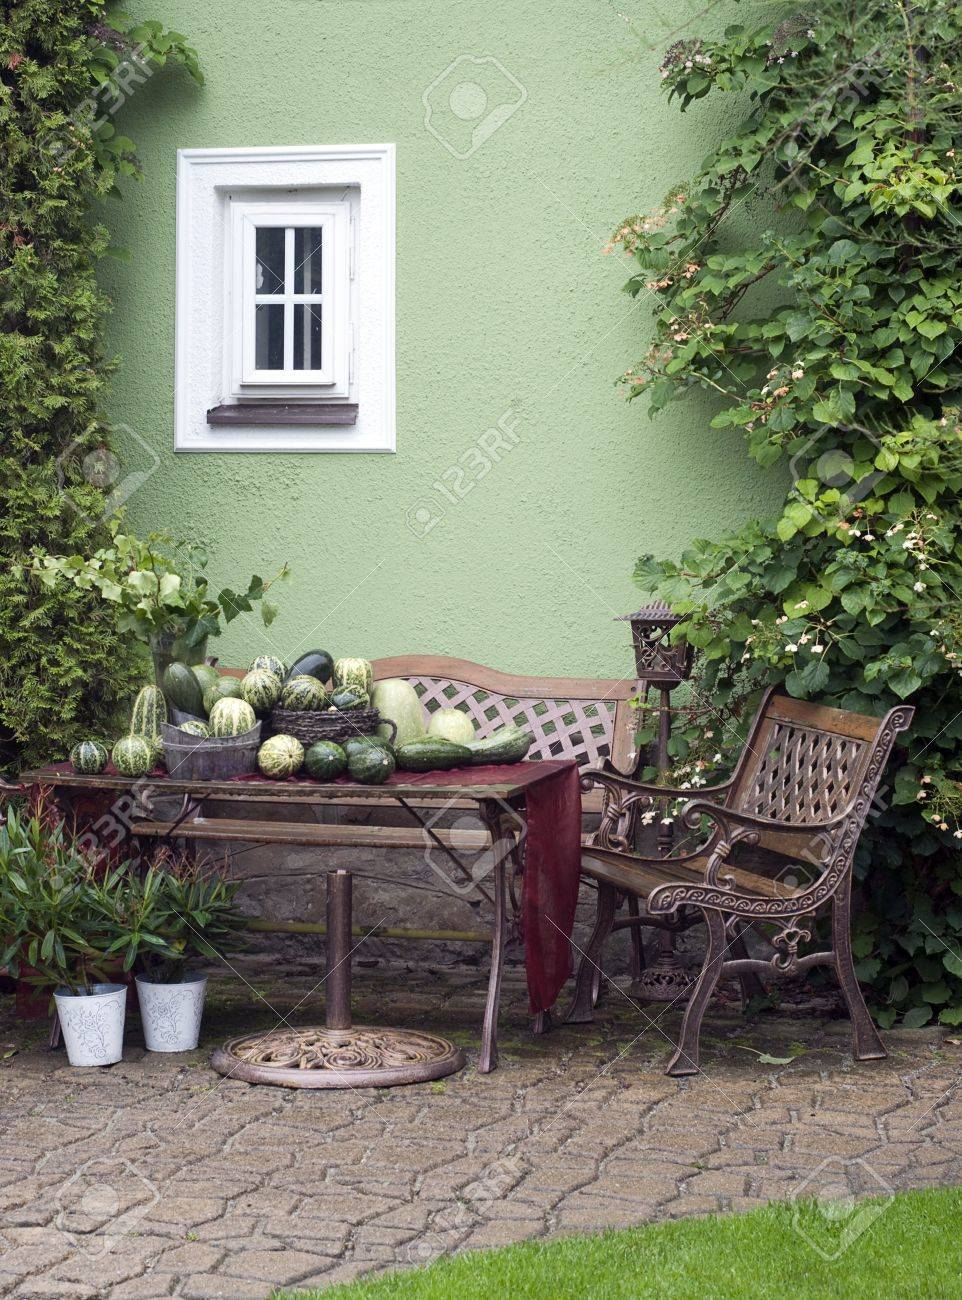 Small Patio Or Street Garden With Rustic Chair And Table, Green Vegetable  And Plants Stock